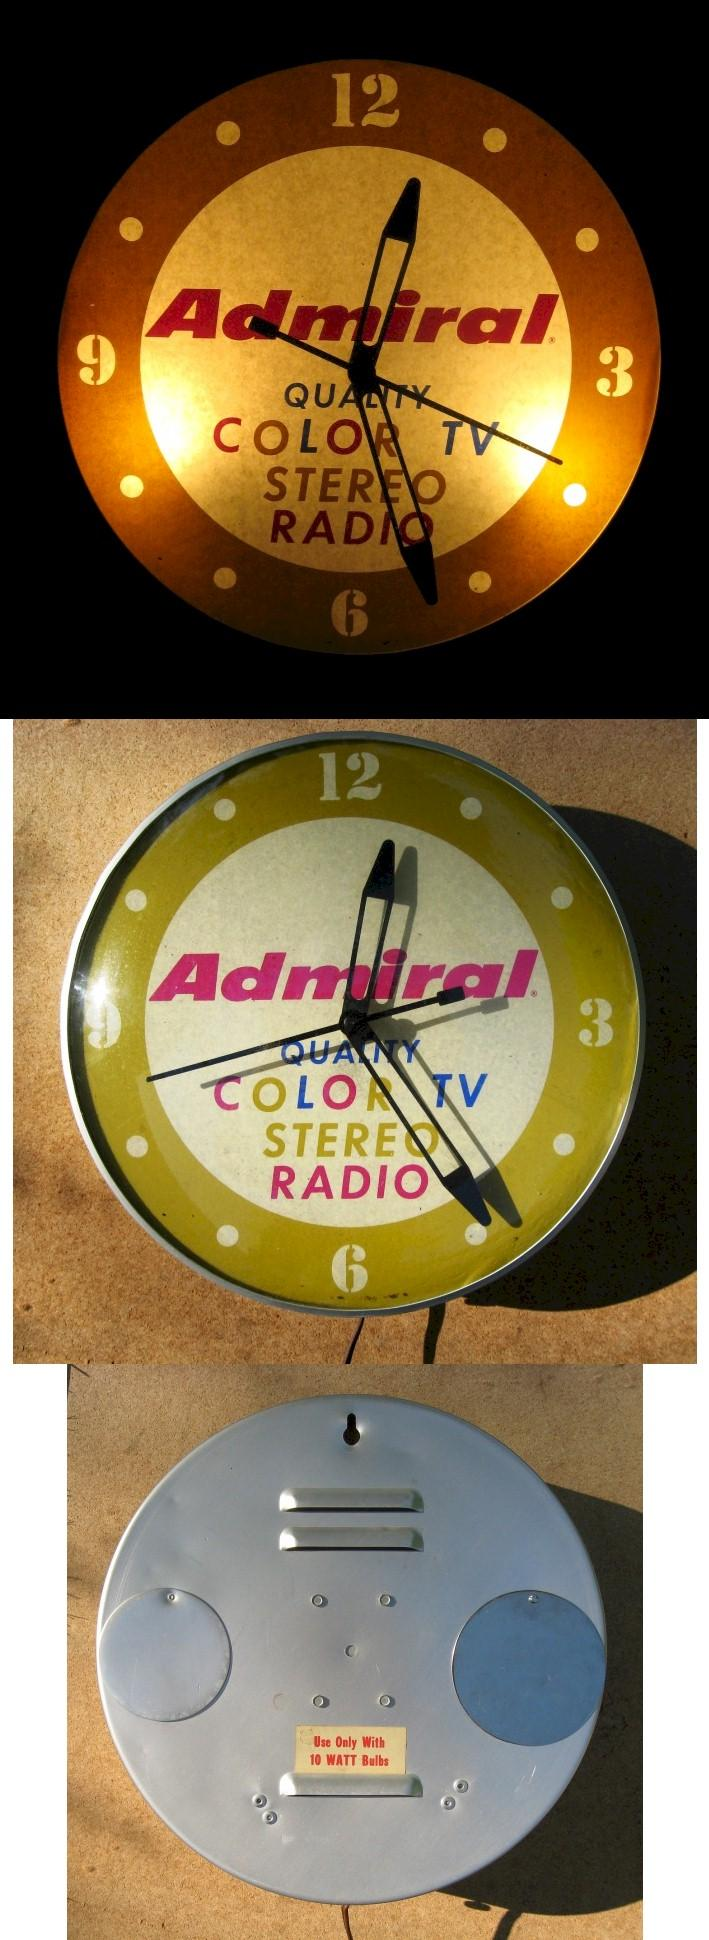 Admiral Radio-TV-Stereo Advertising Clock